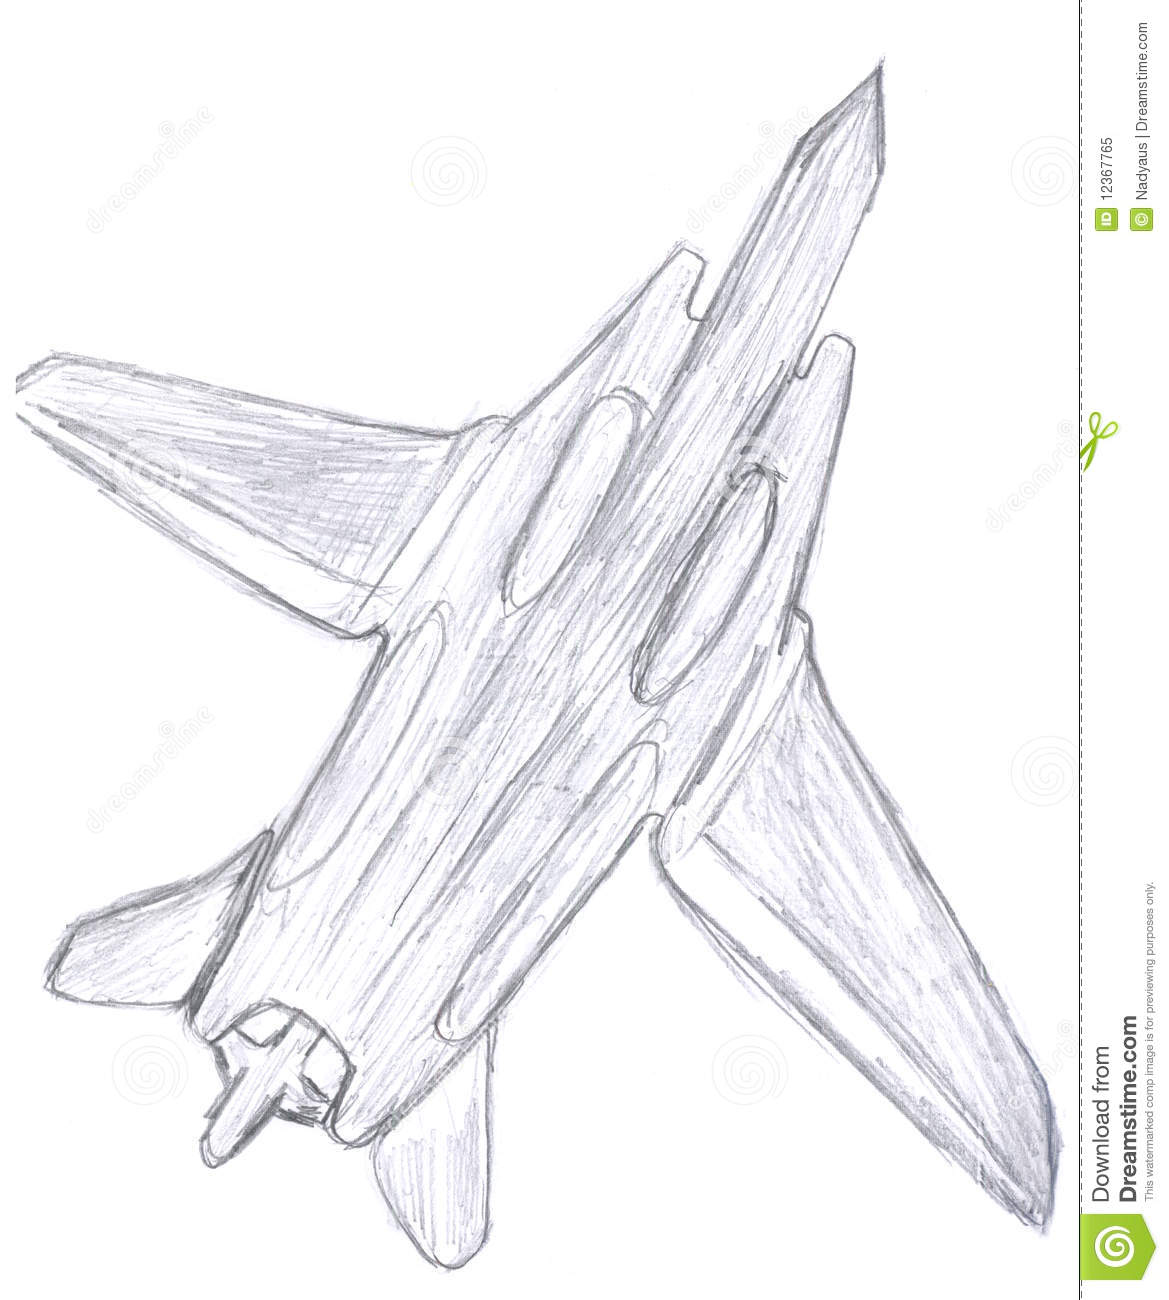 Fighter aircraft kids pensil drawing of plane